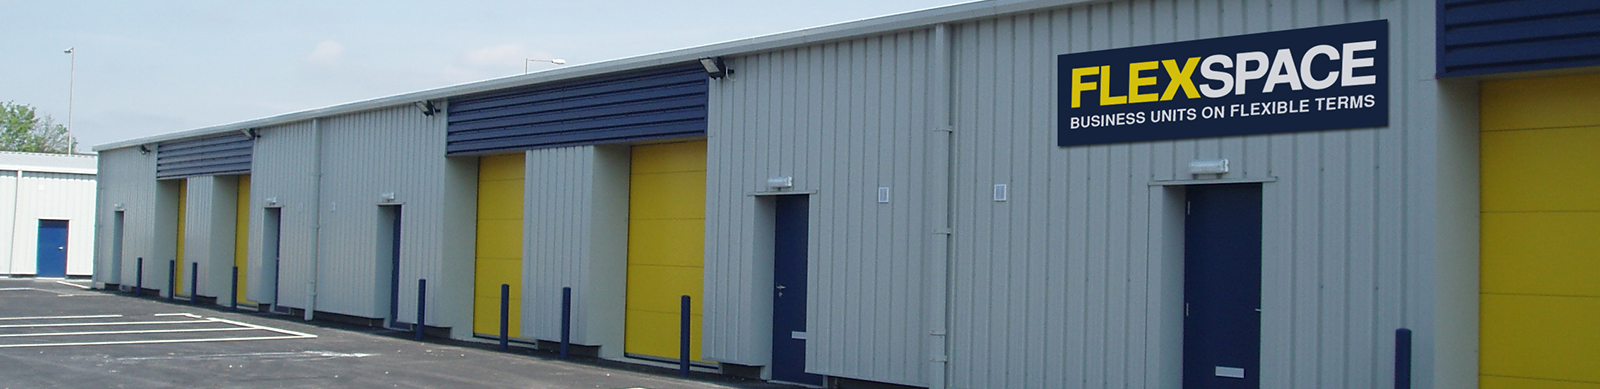 Search Workshop Office Industrial Business Units For Rent